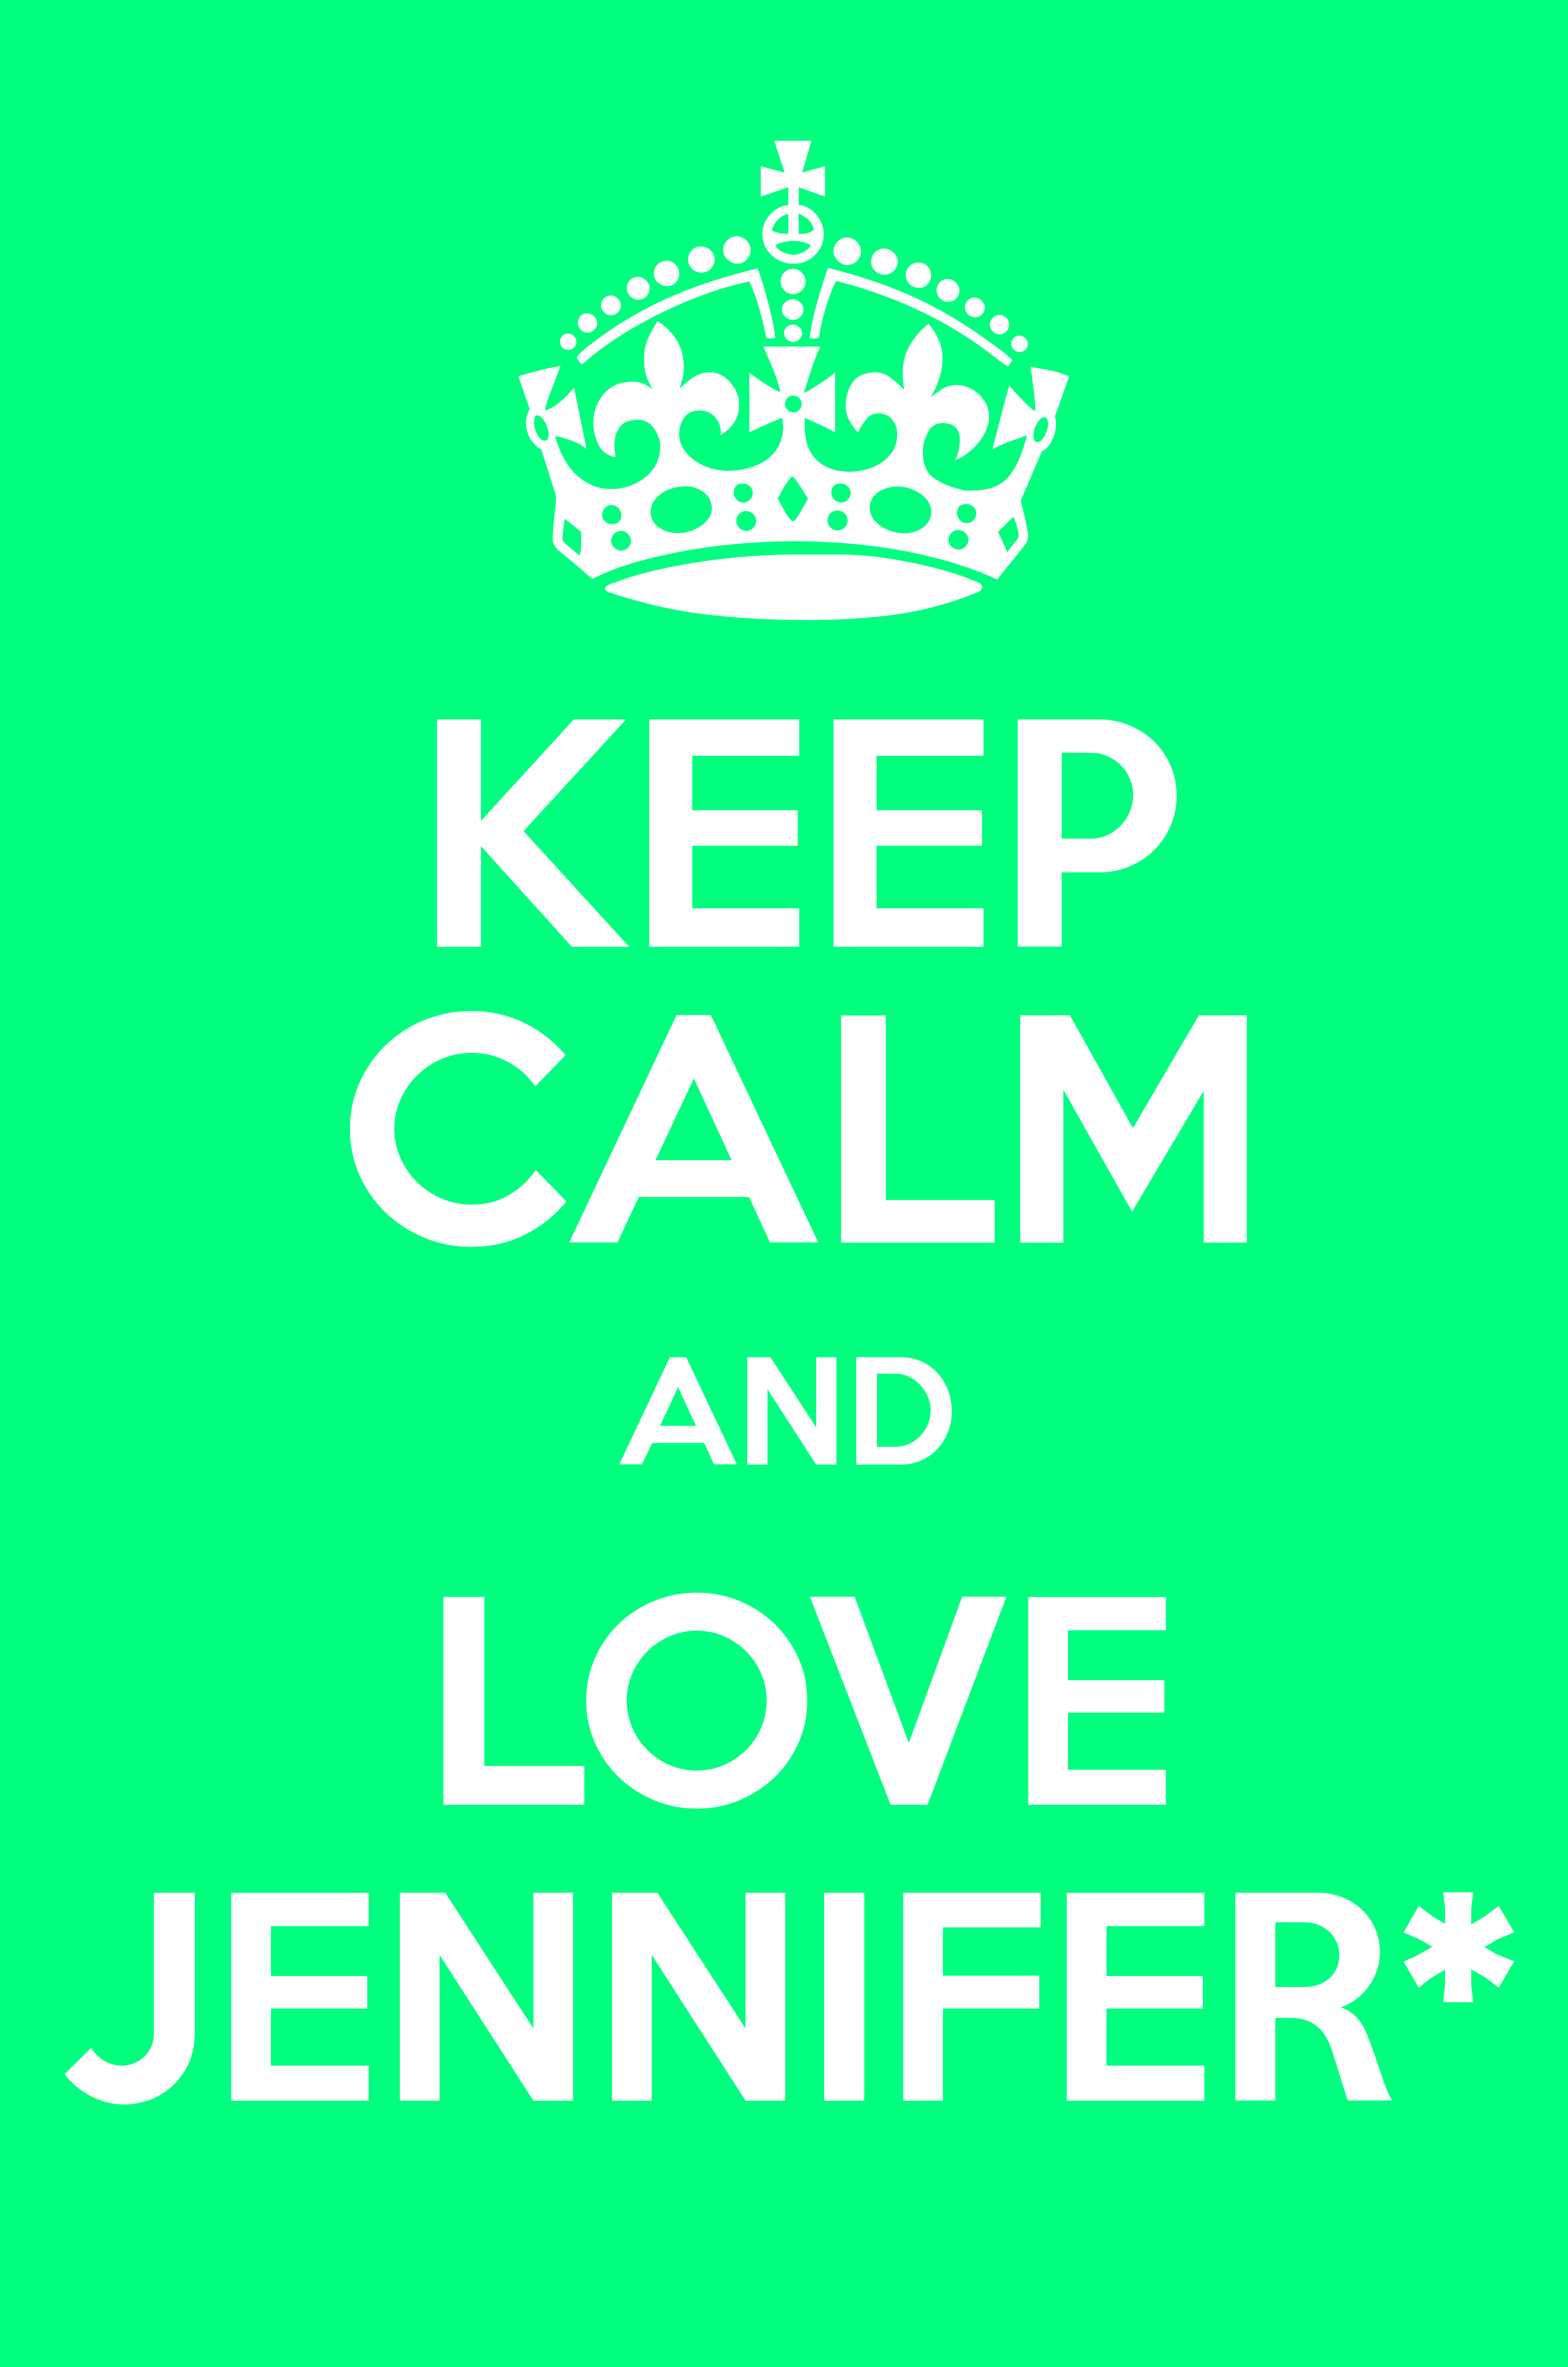 KEEP CALM AND LOVE JENNIFER* - Keep Calm and Posters